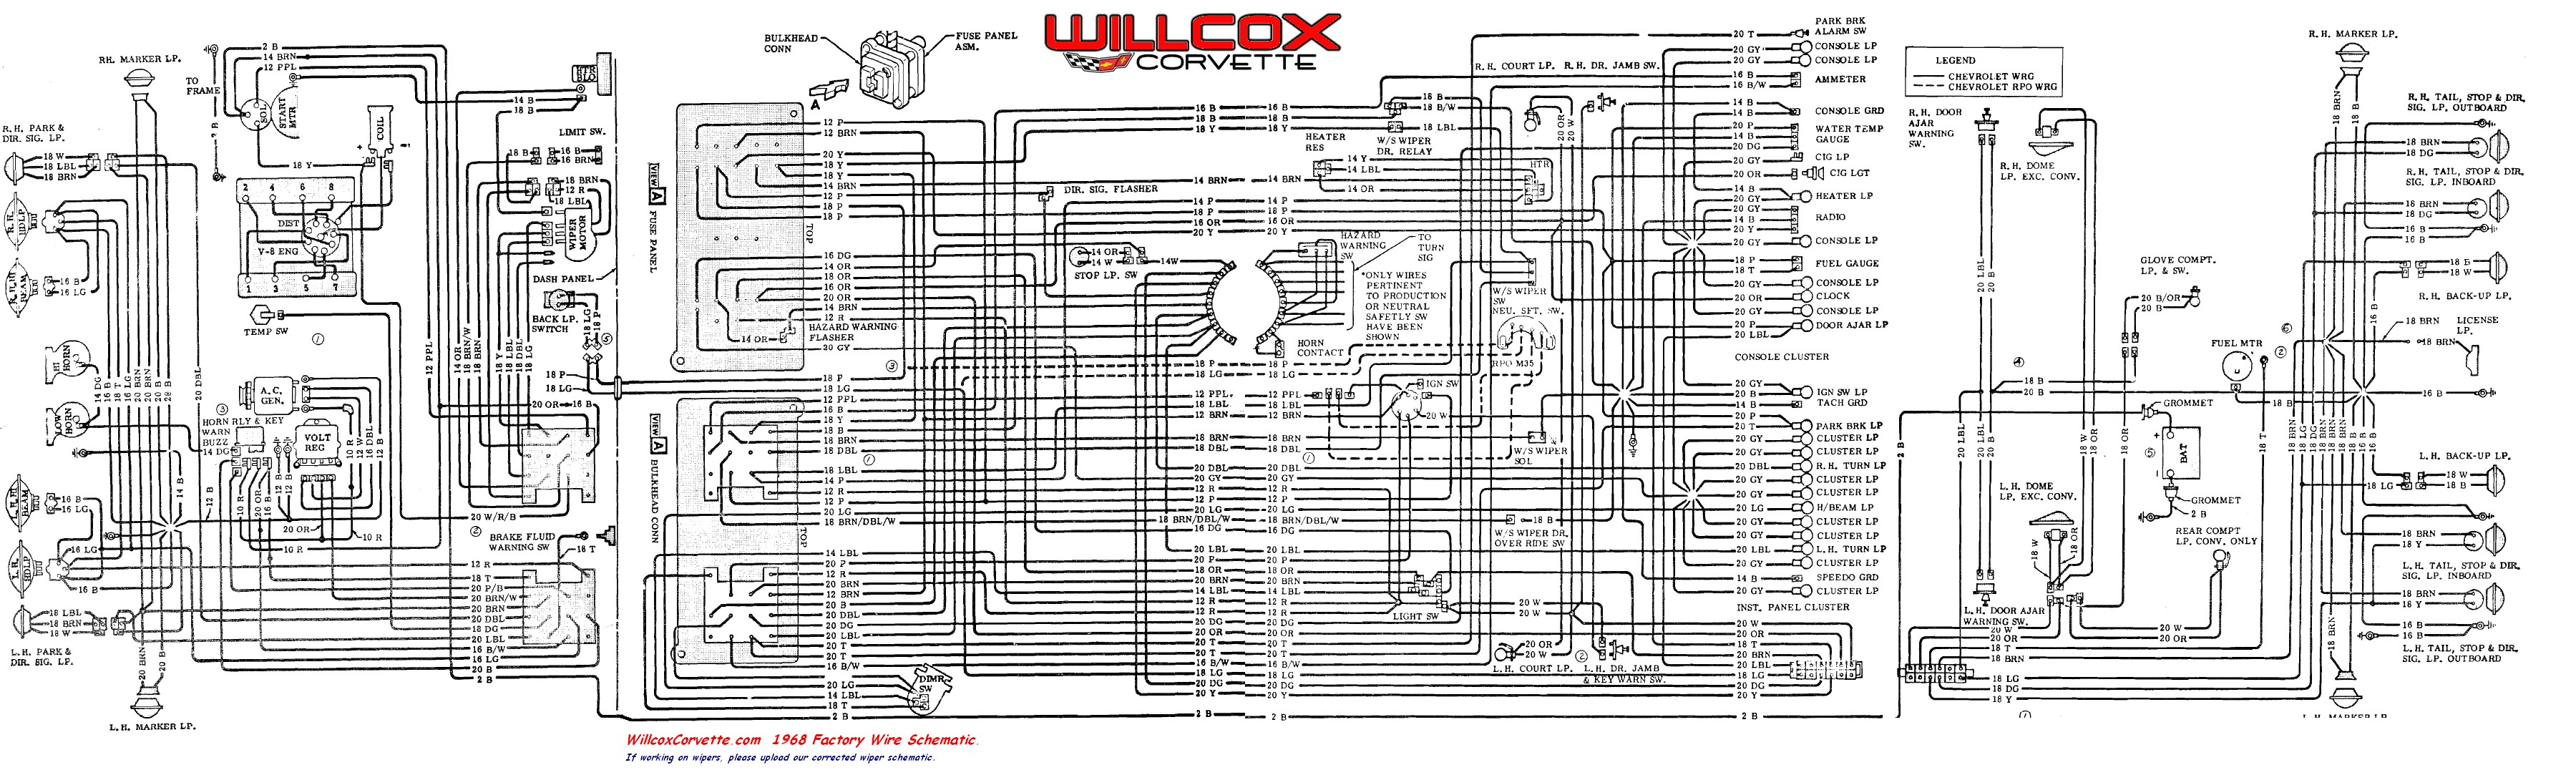 Wiring Diagram Corvette - Wiring Diagram